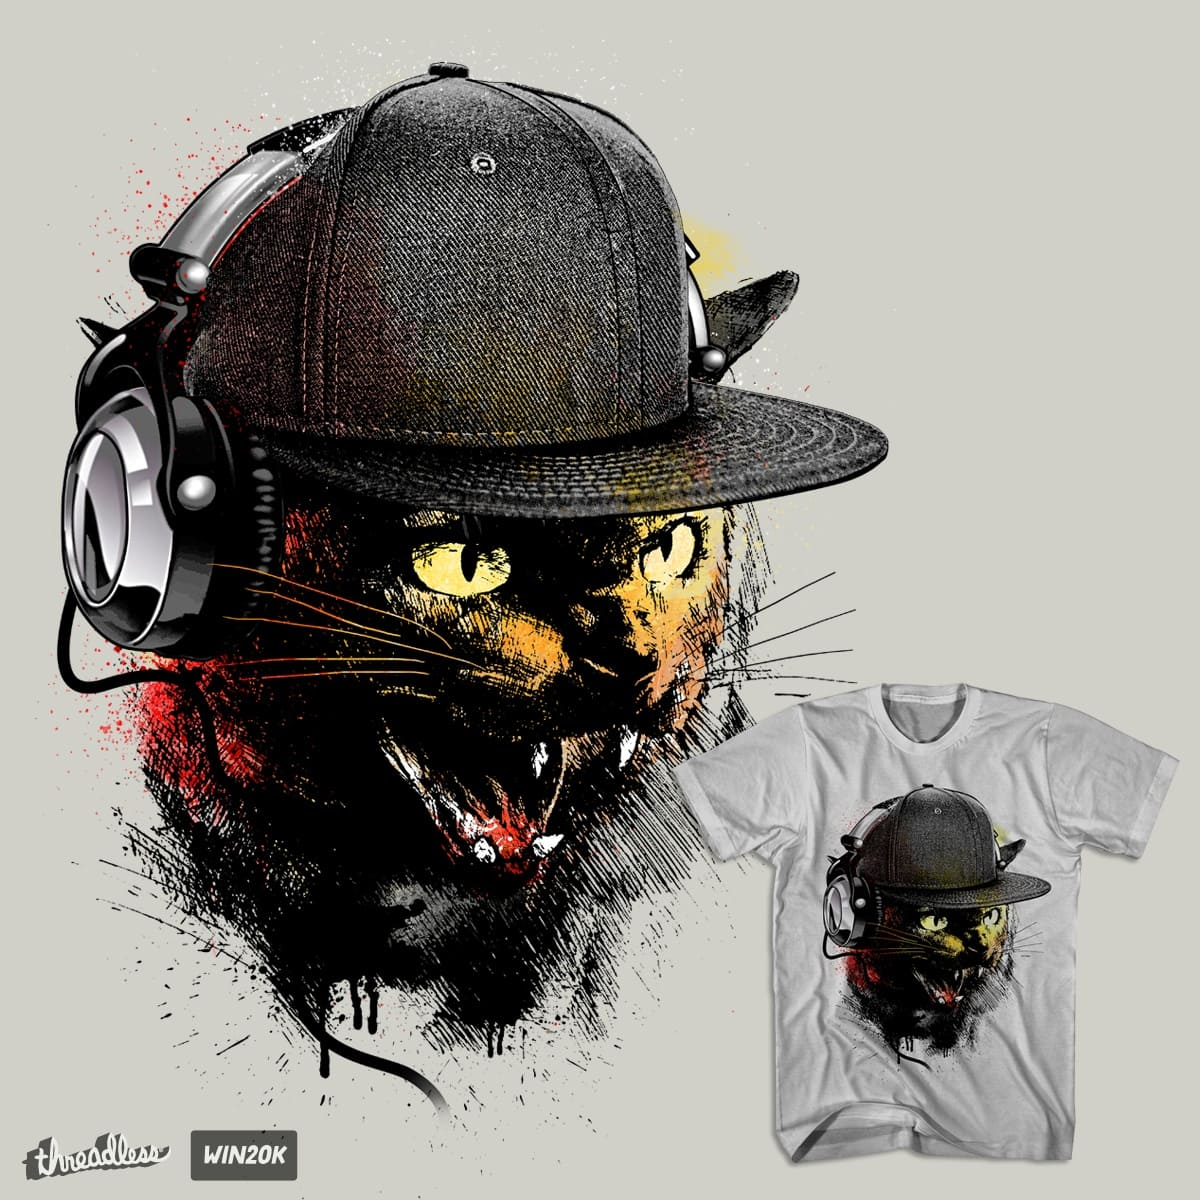 Dj Cat in the mix by chingmoncheng on Threadless